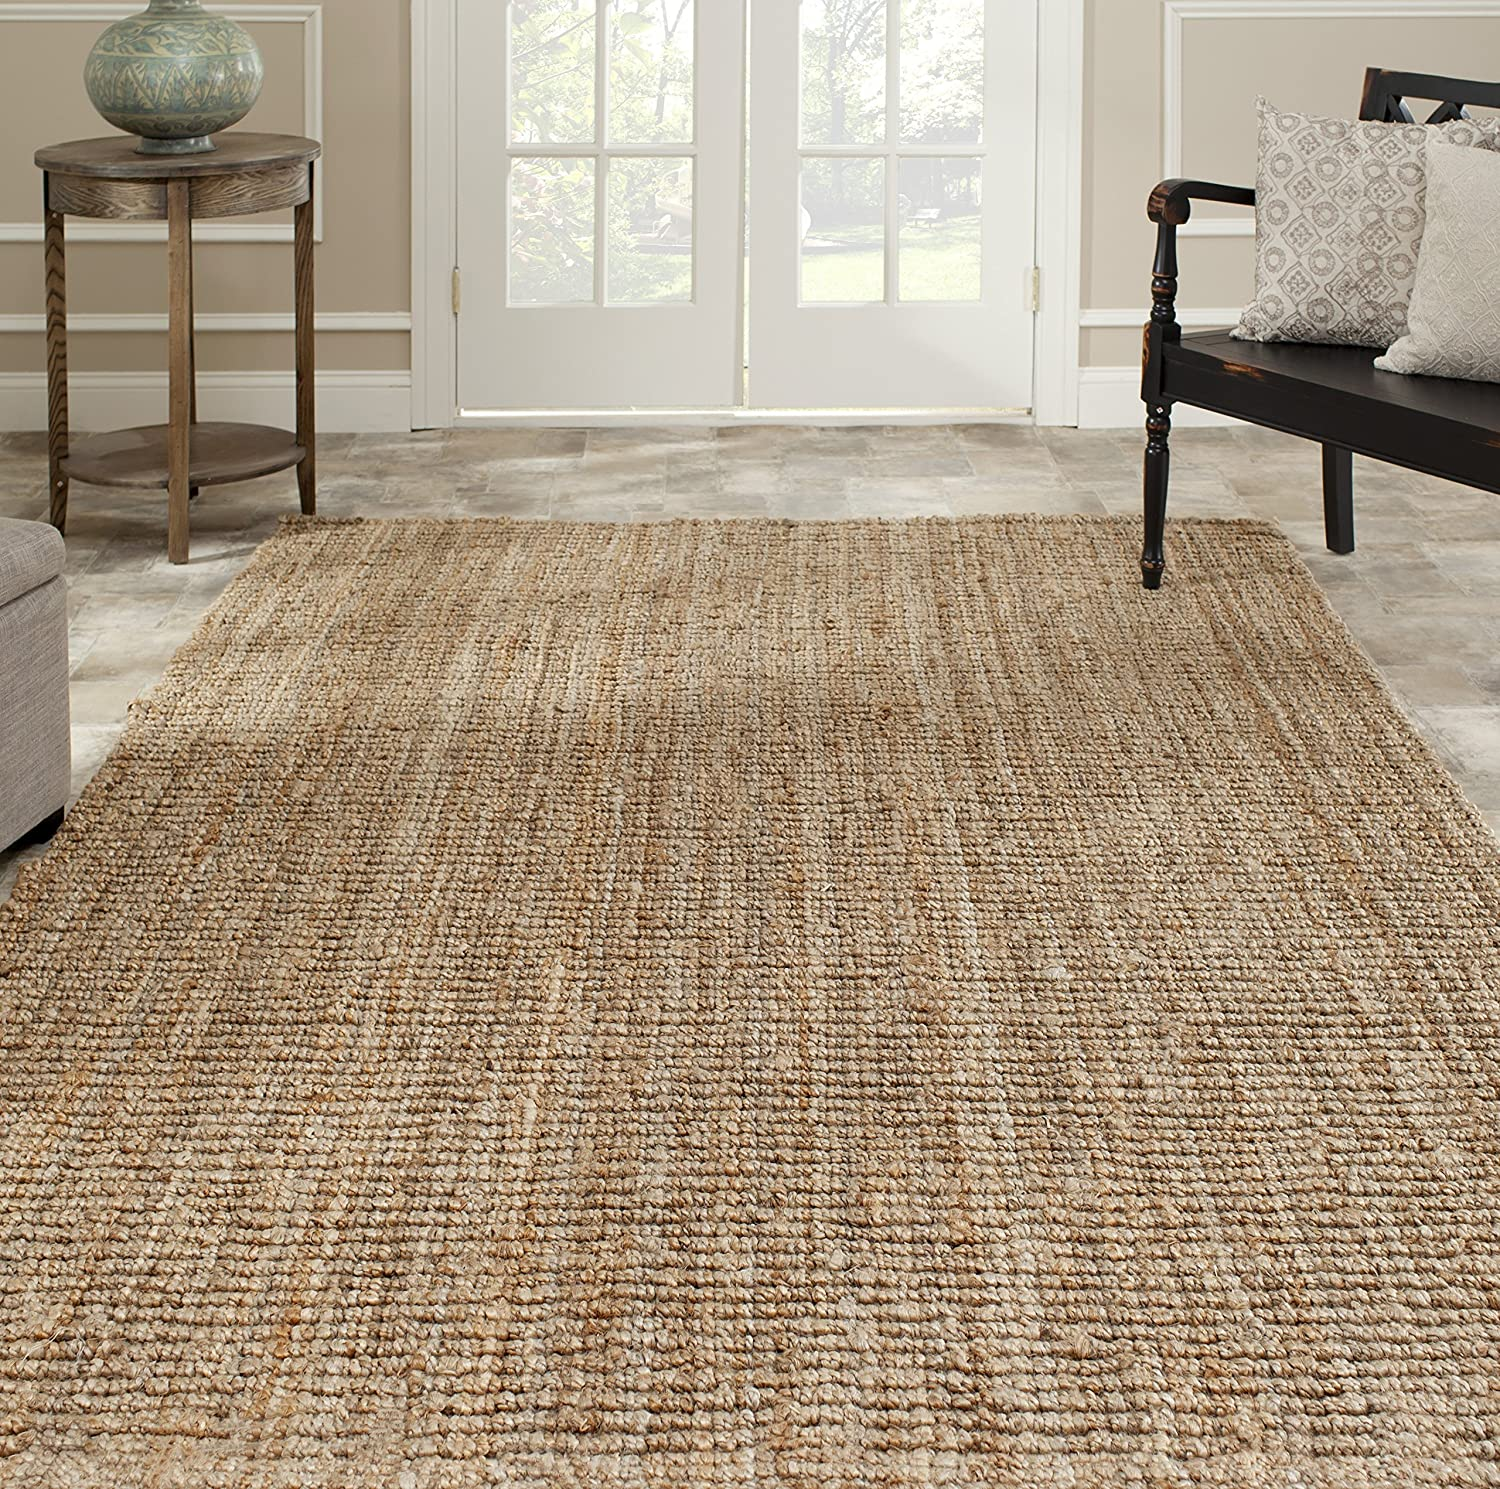 Amazon.com: Safavieh Natural Fiber Collection NF447A Hand Woven Natural Jute  Square Area Rug (6u0027 Square): Kitchen U0026 Dining